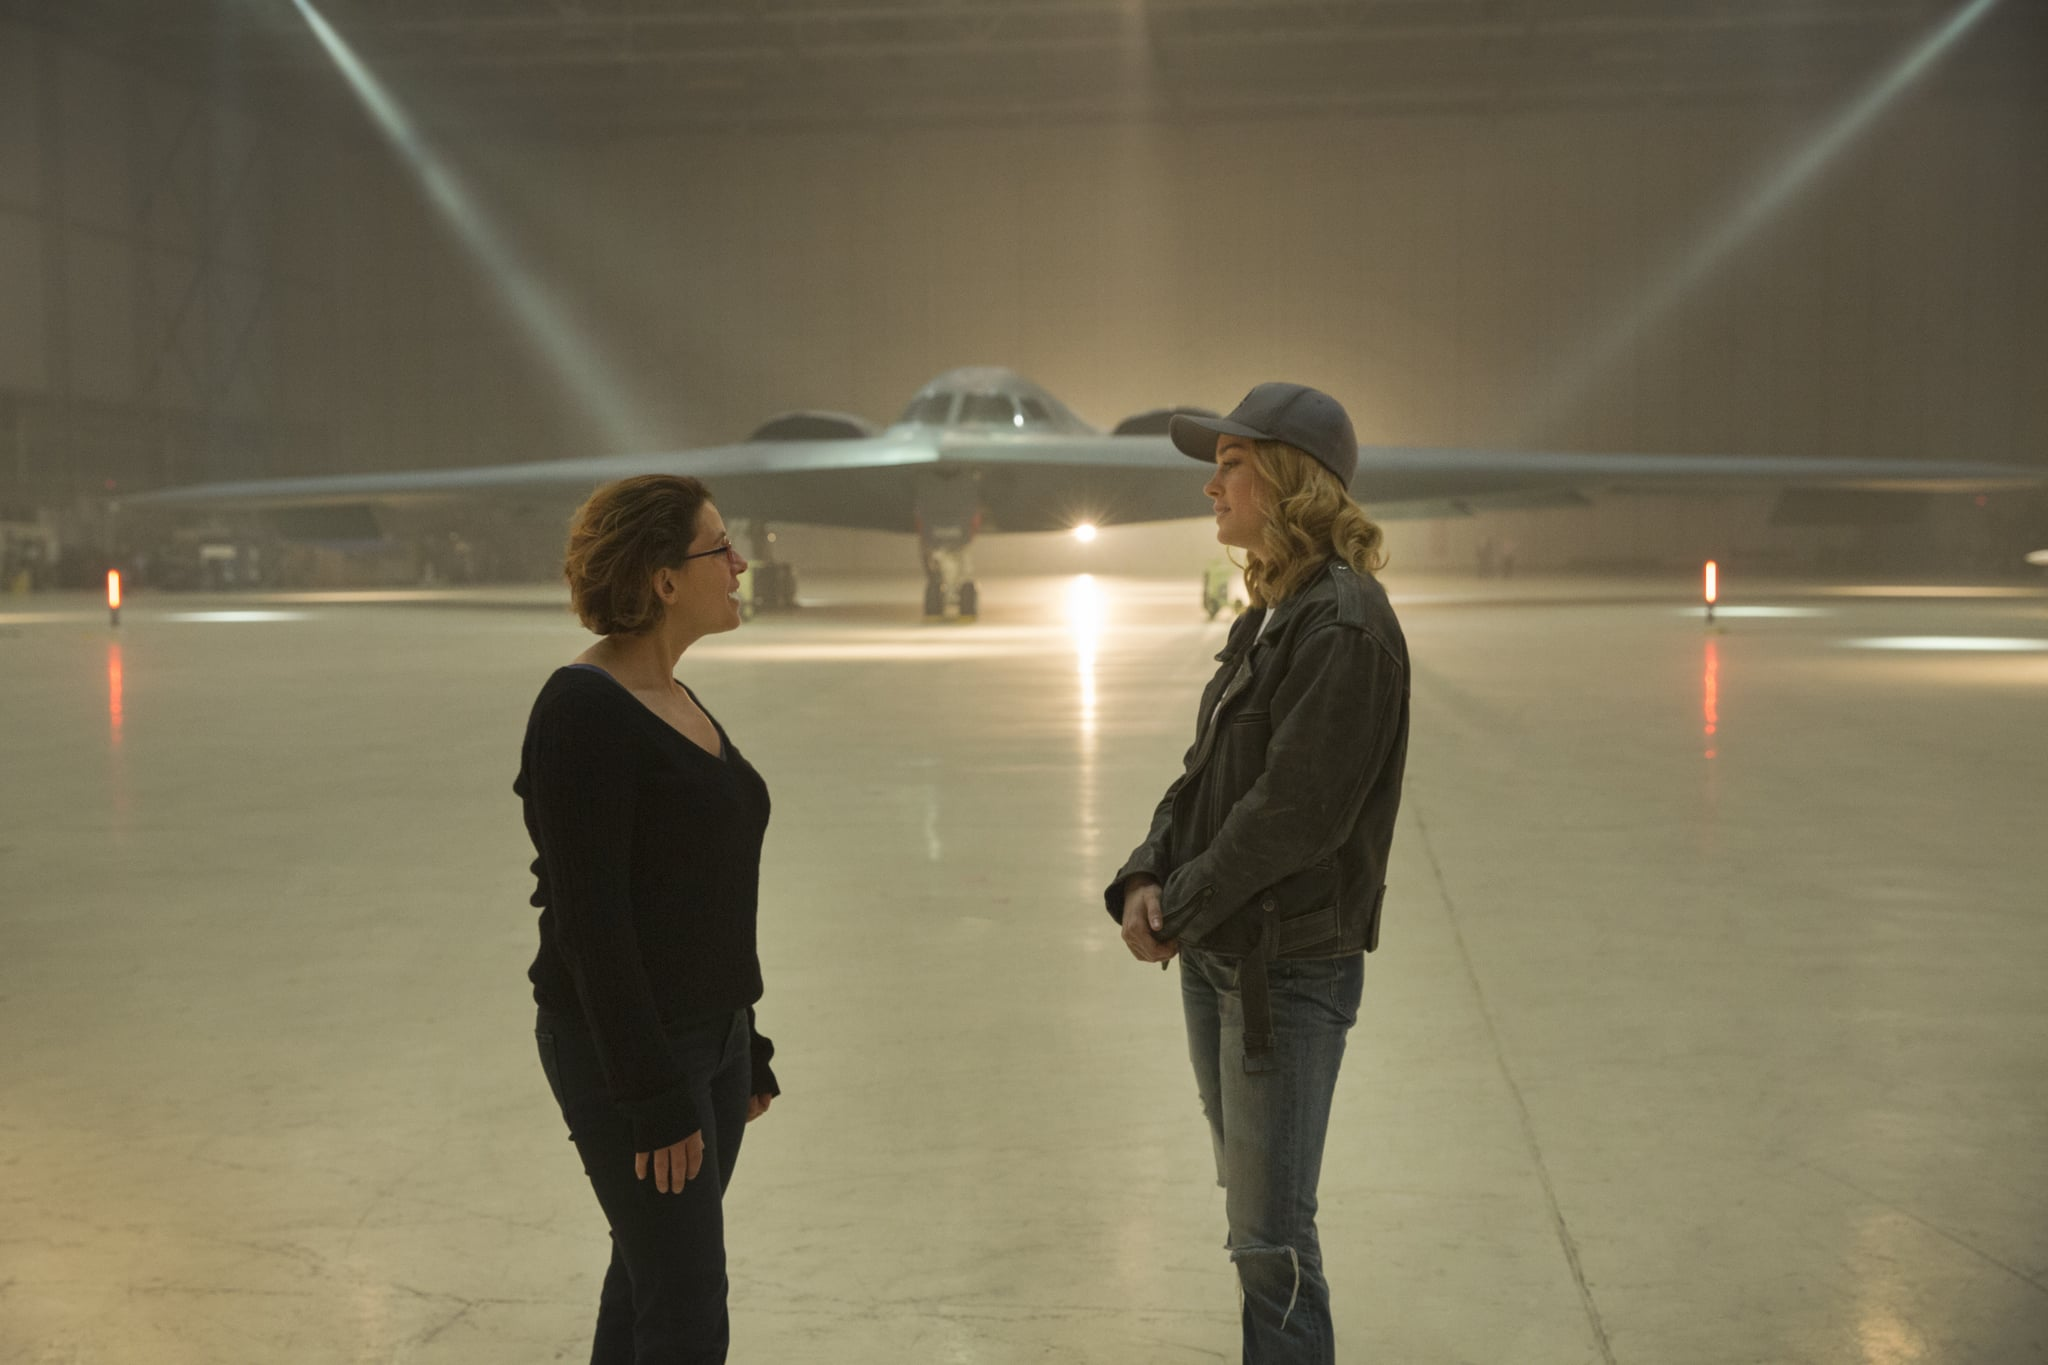 Marvel Studios' CAPTAIN MARVELL to R: Director Anna Boden and Brie Larson (Captain Marvel) on set.Photo: Chuck Zlotnick©Marvel Studios 2019